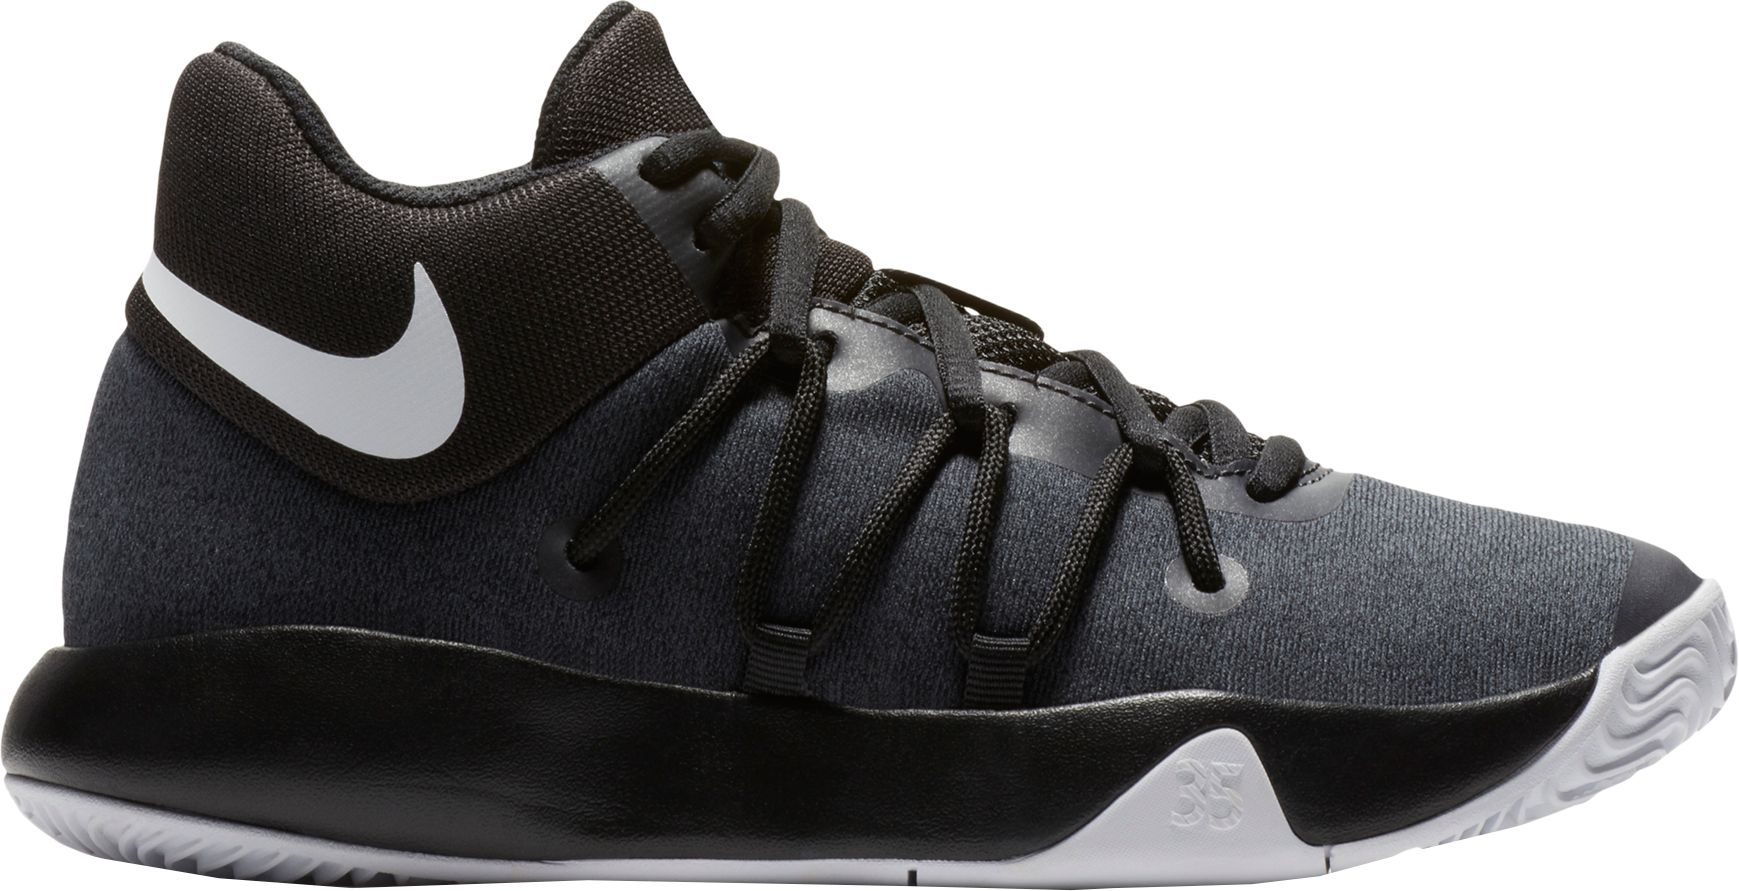 Product Image · Nike Kids' Grade School KD Trey 5 V Basketball Shoes · Black /White ...